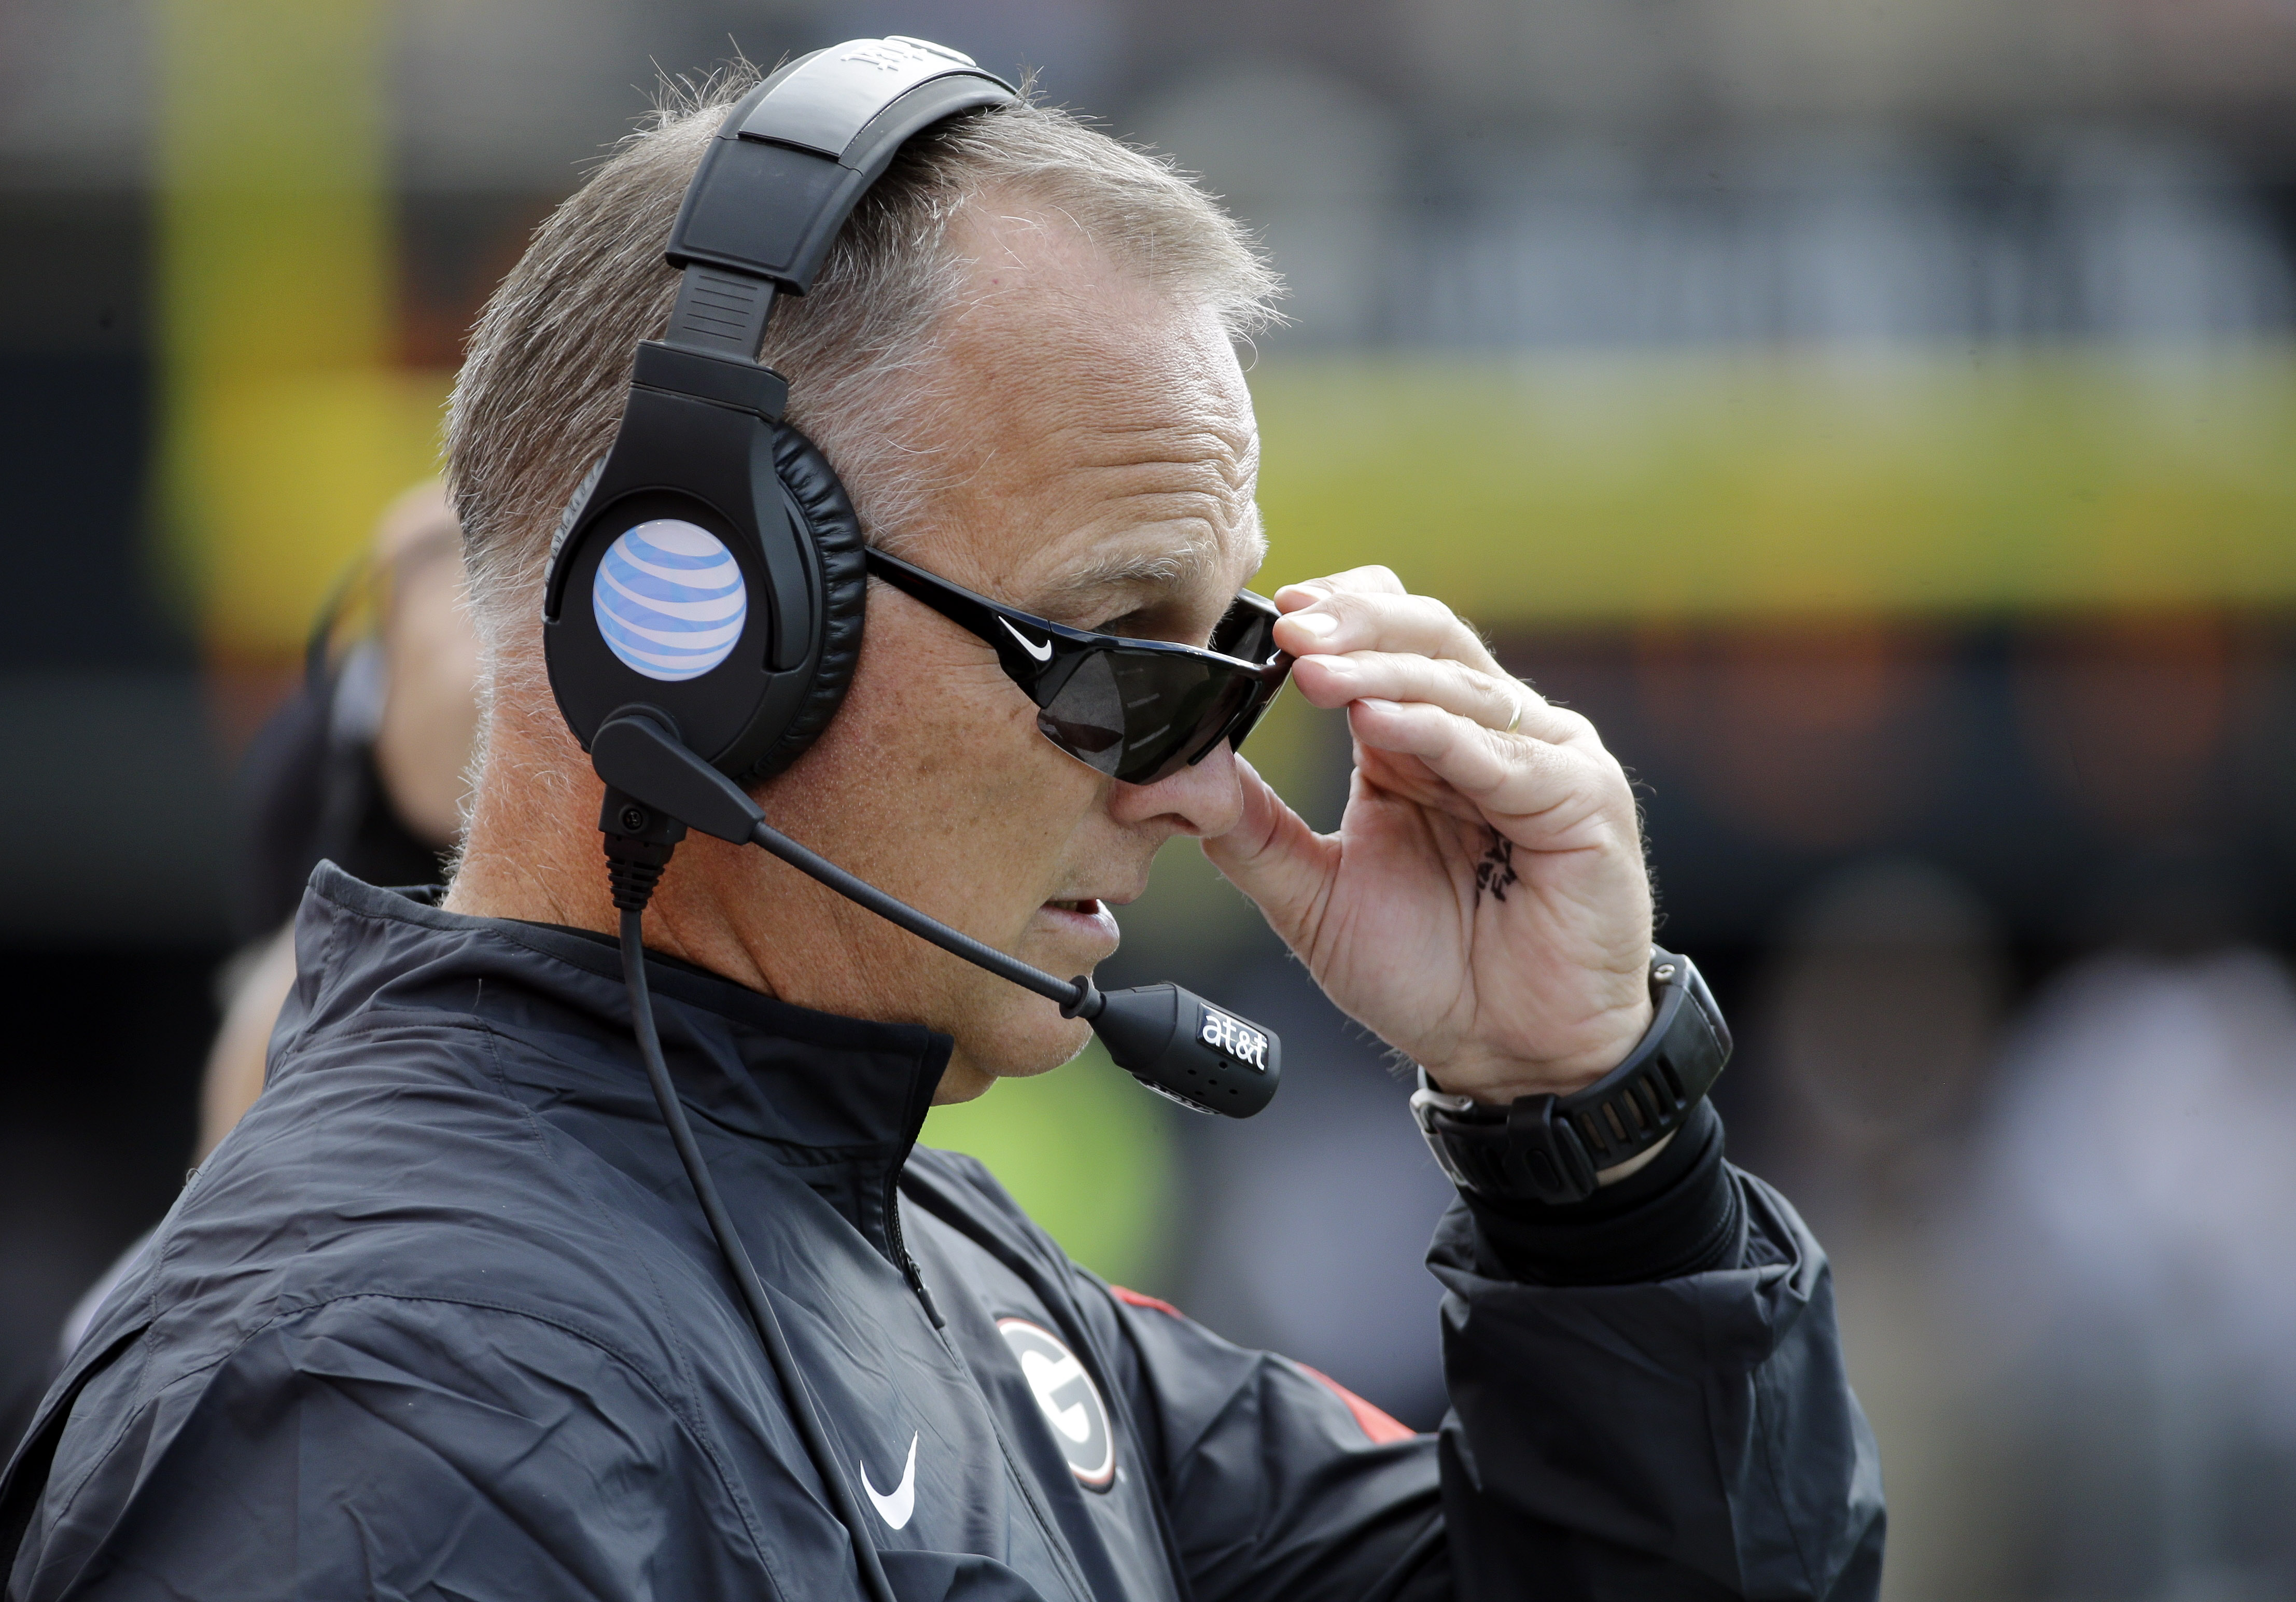 Georgia head coach Mark Richt watches the action from the sideline in the first half of an NCAA college football game against Vanderbilt Saturday, Sept. 12, 2015, in Nashville, Tenn. (AP Photo/Mark Humphrey)